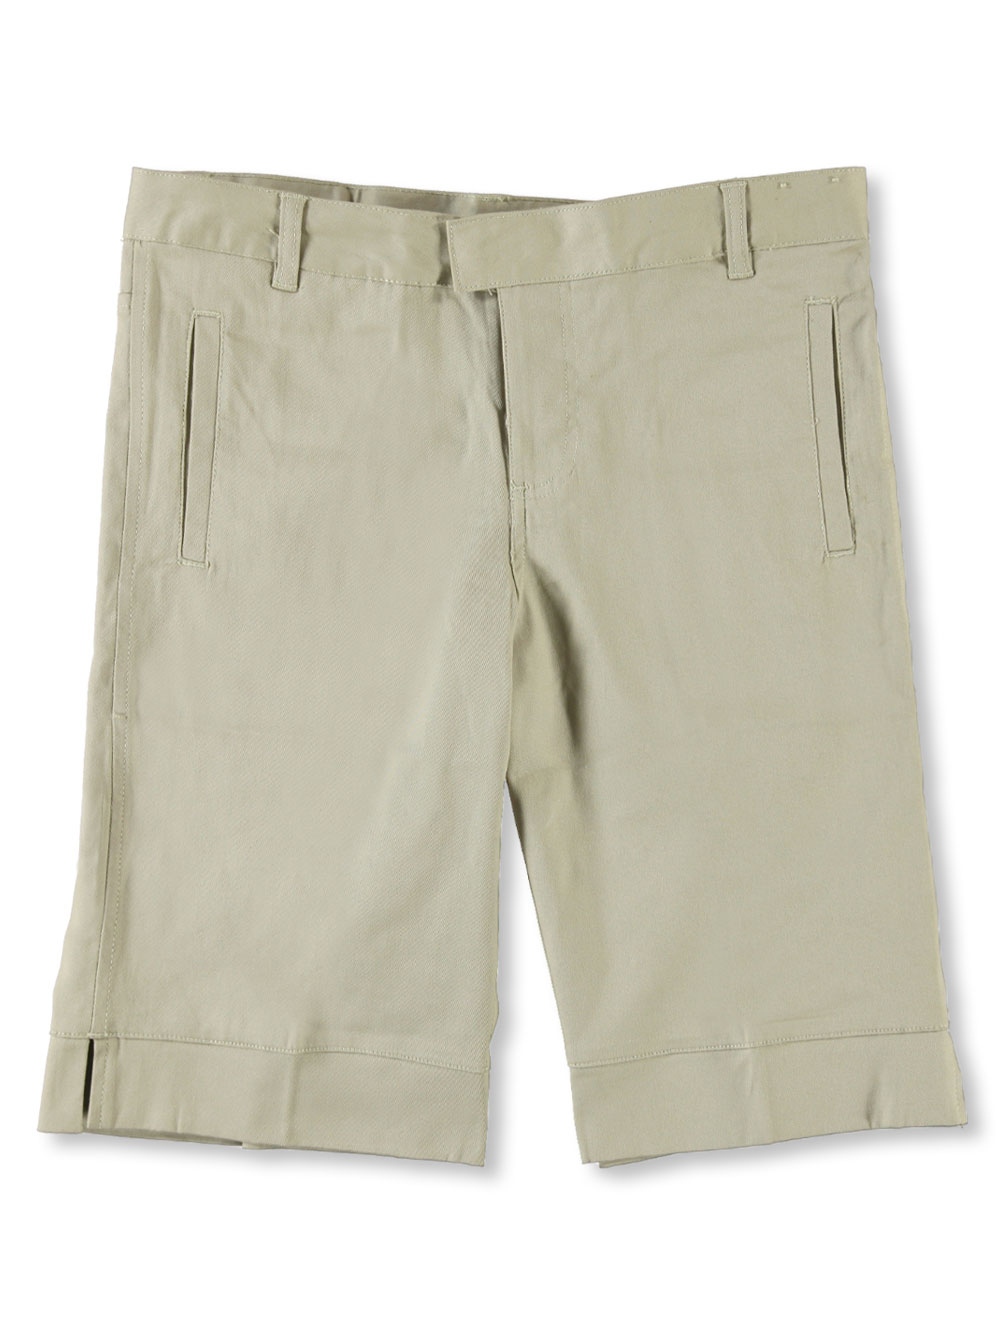 Size 20 Shorts/Skorts for Girls